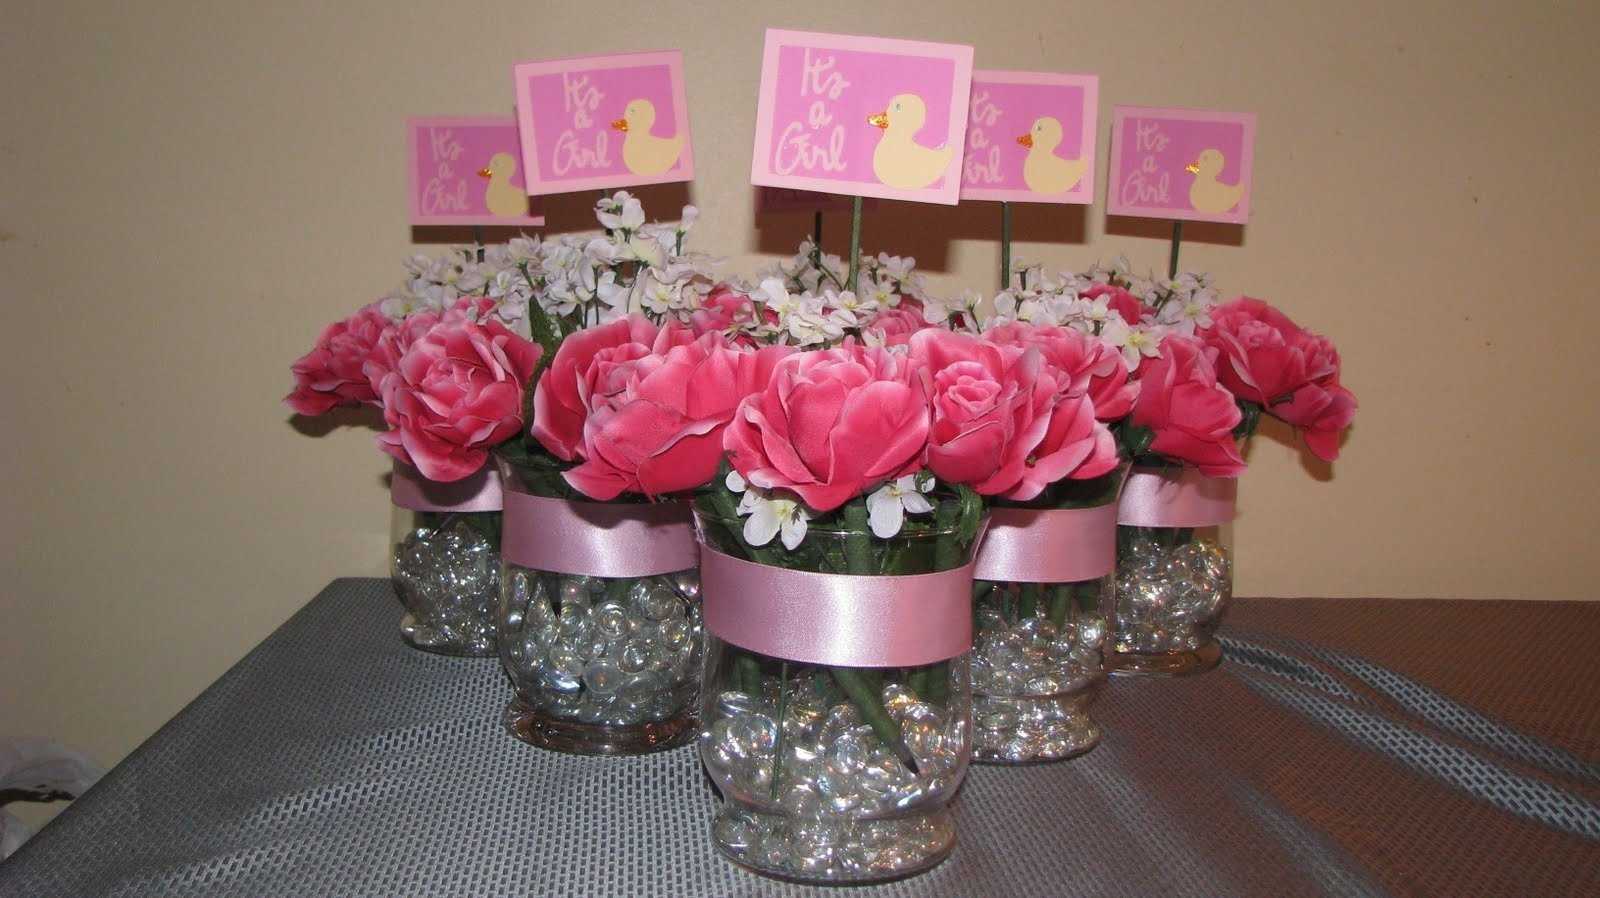 10 Most Popular Baby Shower Table Centerpiece Ideas baby shower table centerpiece ideas unique gift cheap bridal 3 2021